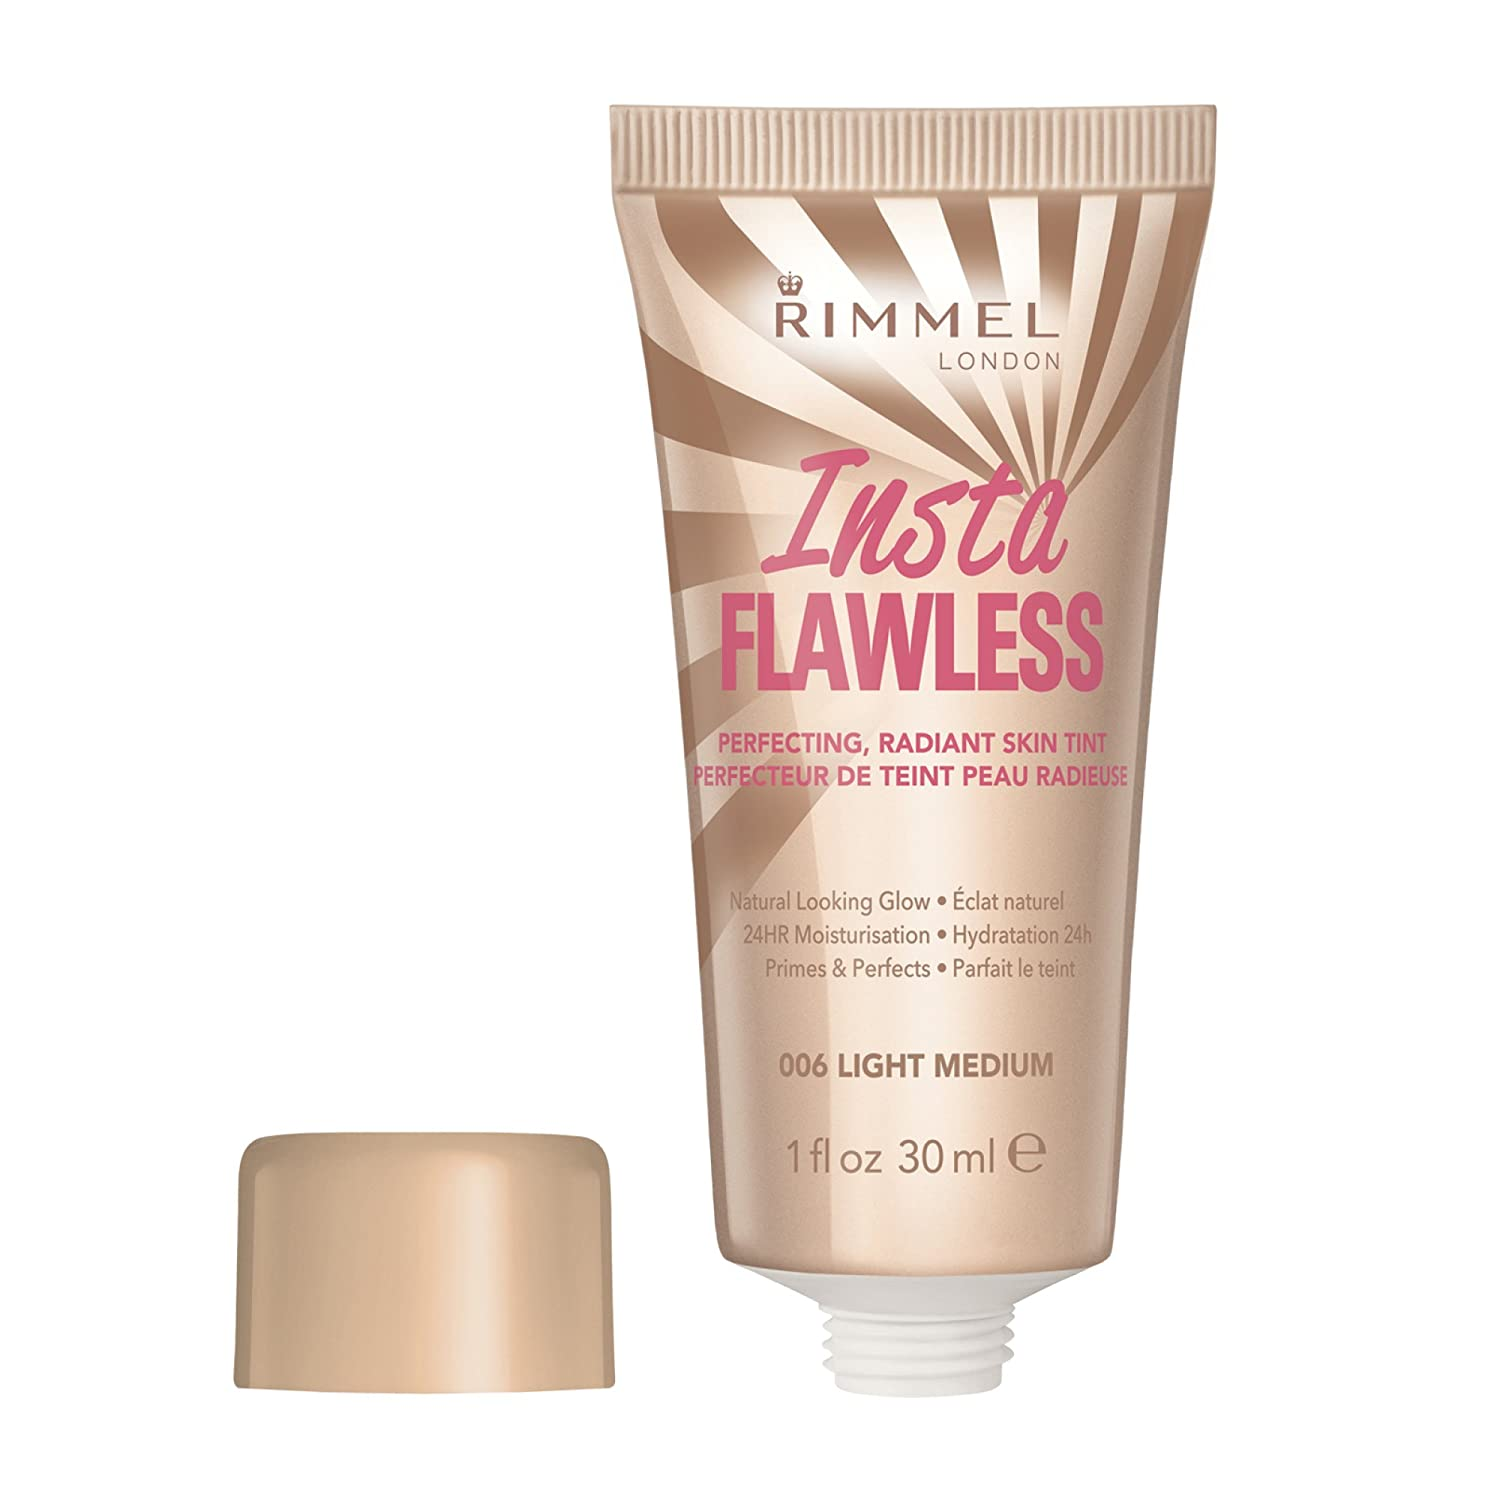 Rimmel London - Insta Flawless Foundation Coty